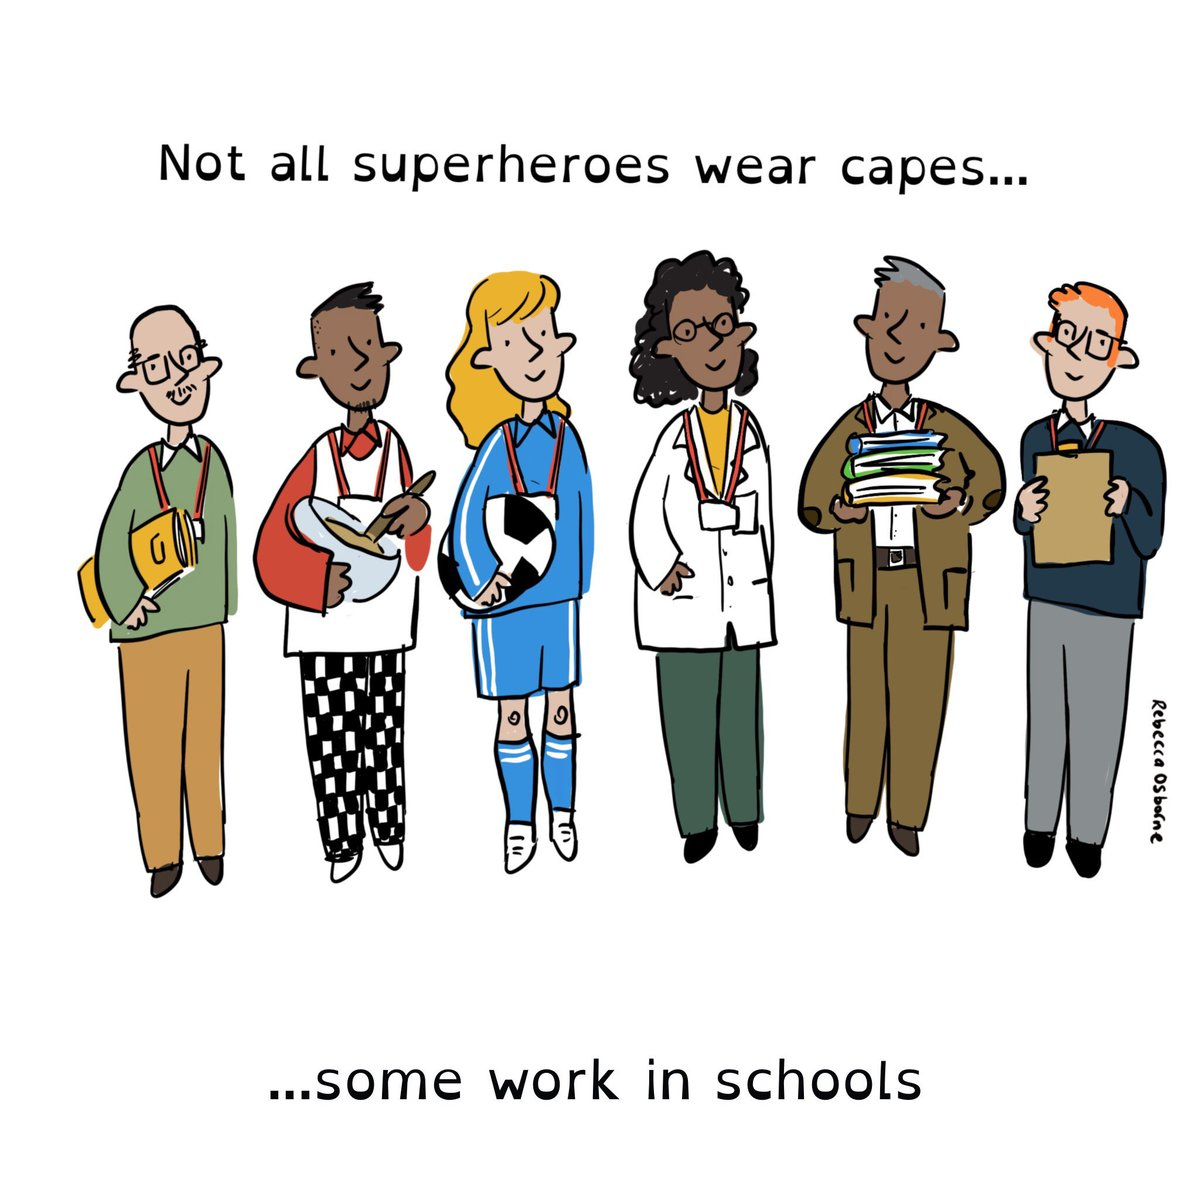 Absolutely agree with @kirsten169! @rebeccavosborne puts it well! #schools #heroes https://t.co/wAw1W00q2J https://t.co/waC7Mo8ArO